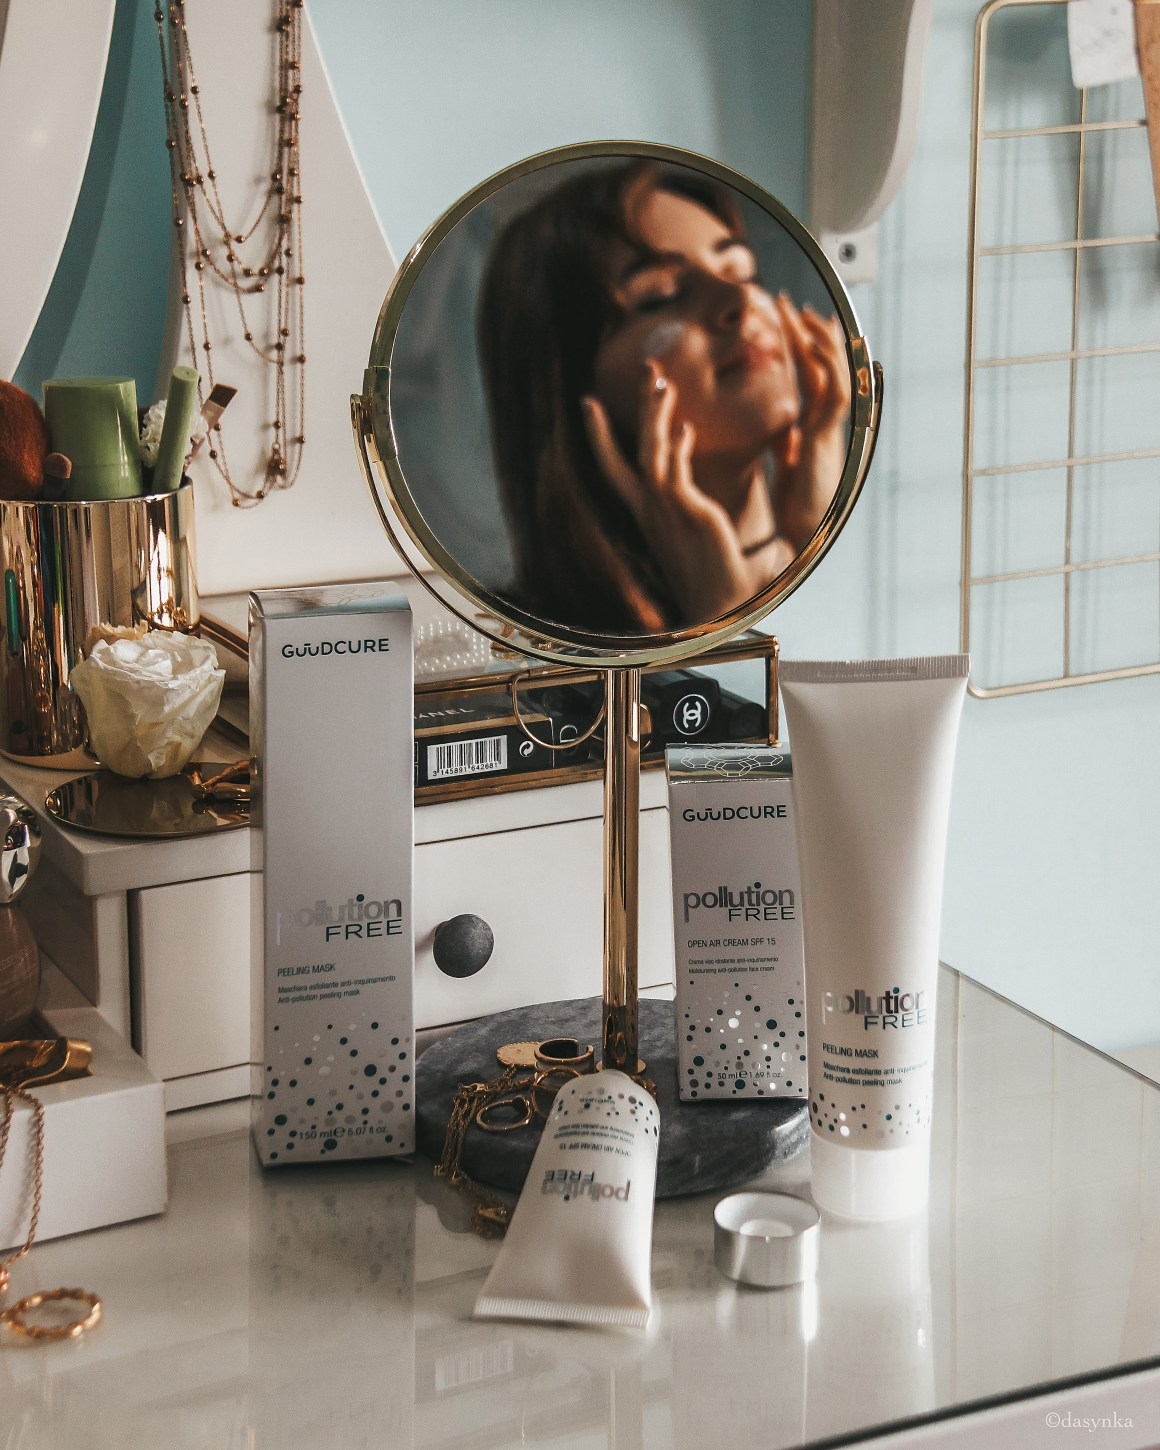 dasynka-fashion-blog-blogger-influencer-inspiration-shooting-model-girl-instagram-italy-lifestyle-skincare-guudcure-pollution-anti-aging-cream-day-spf-15-scrub-peeling-natural-mirror-natural-no-silicones-glycolic-acid-skin-routine-perfect